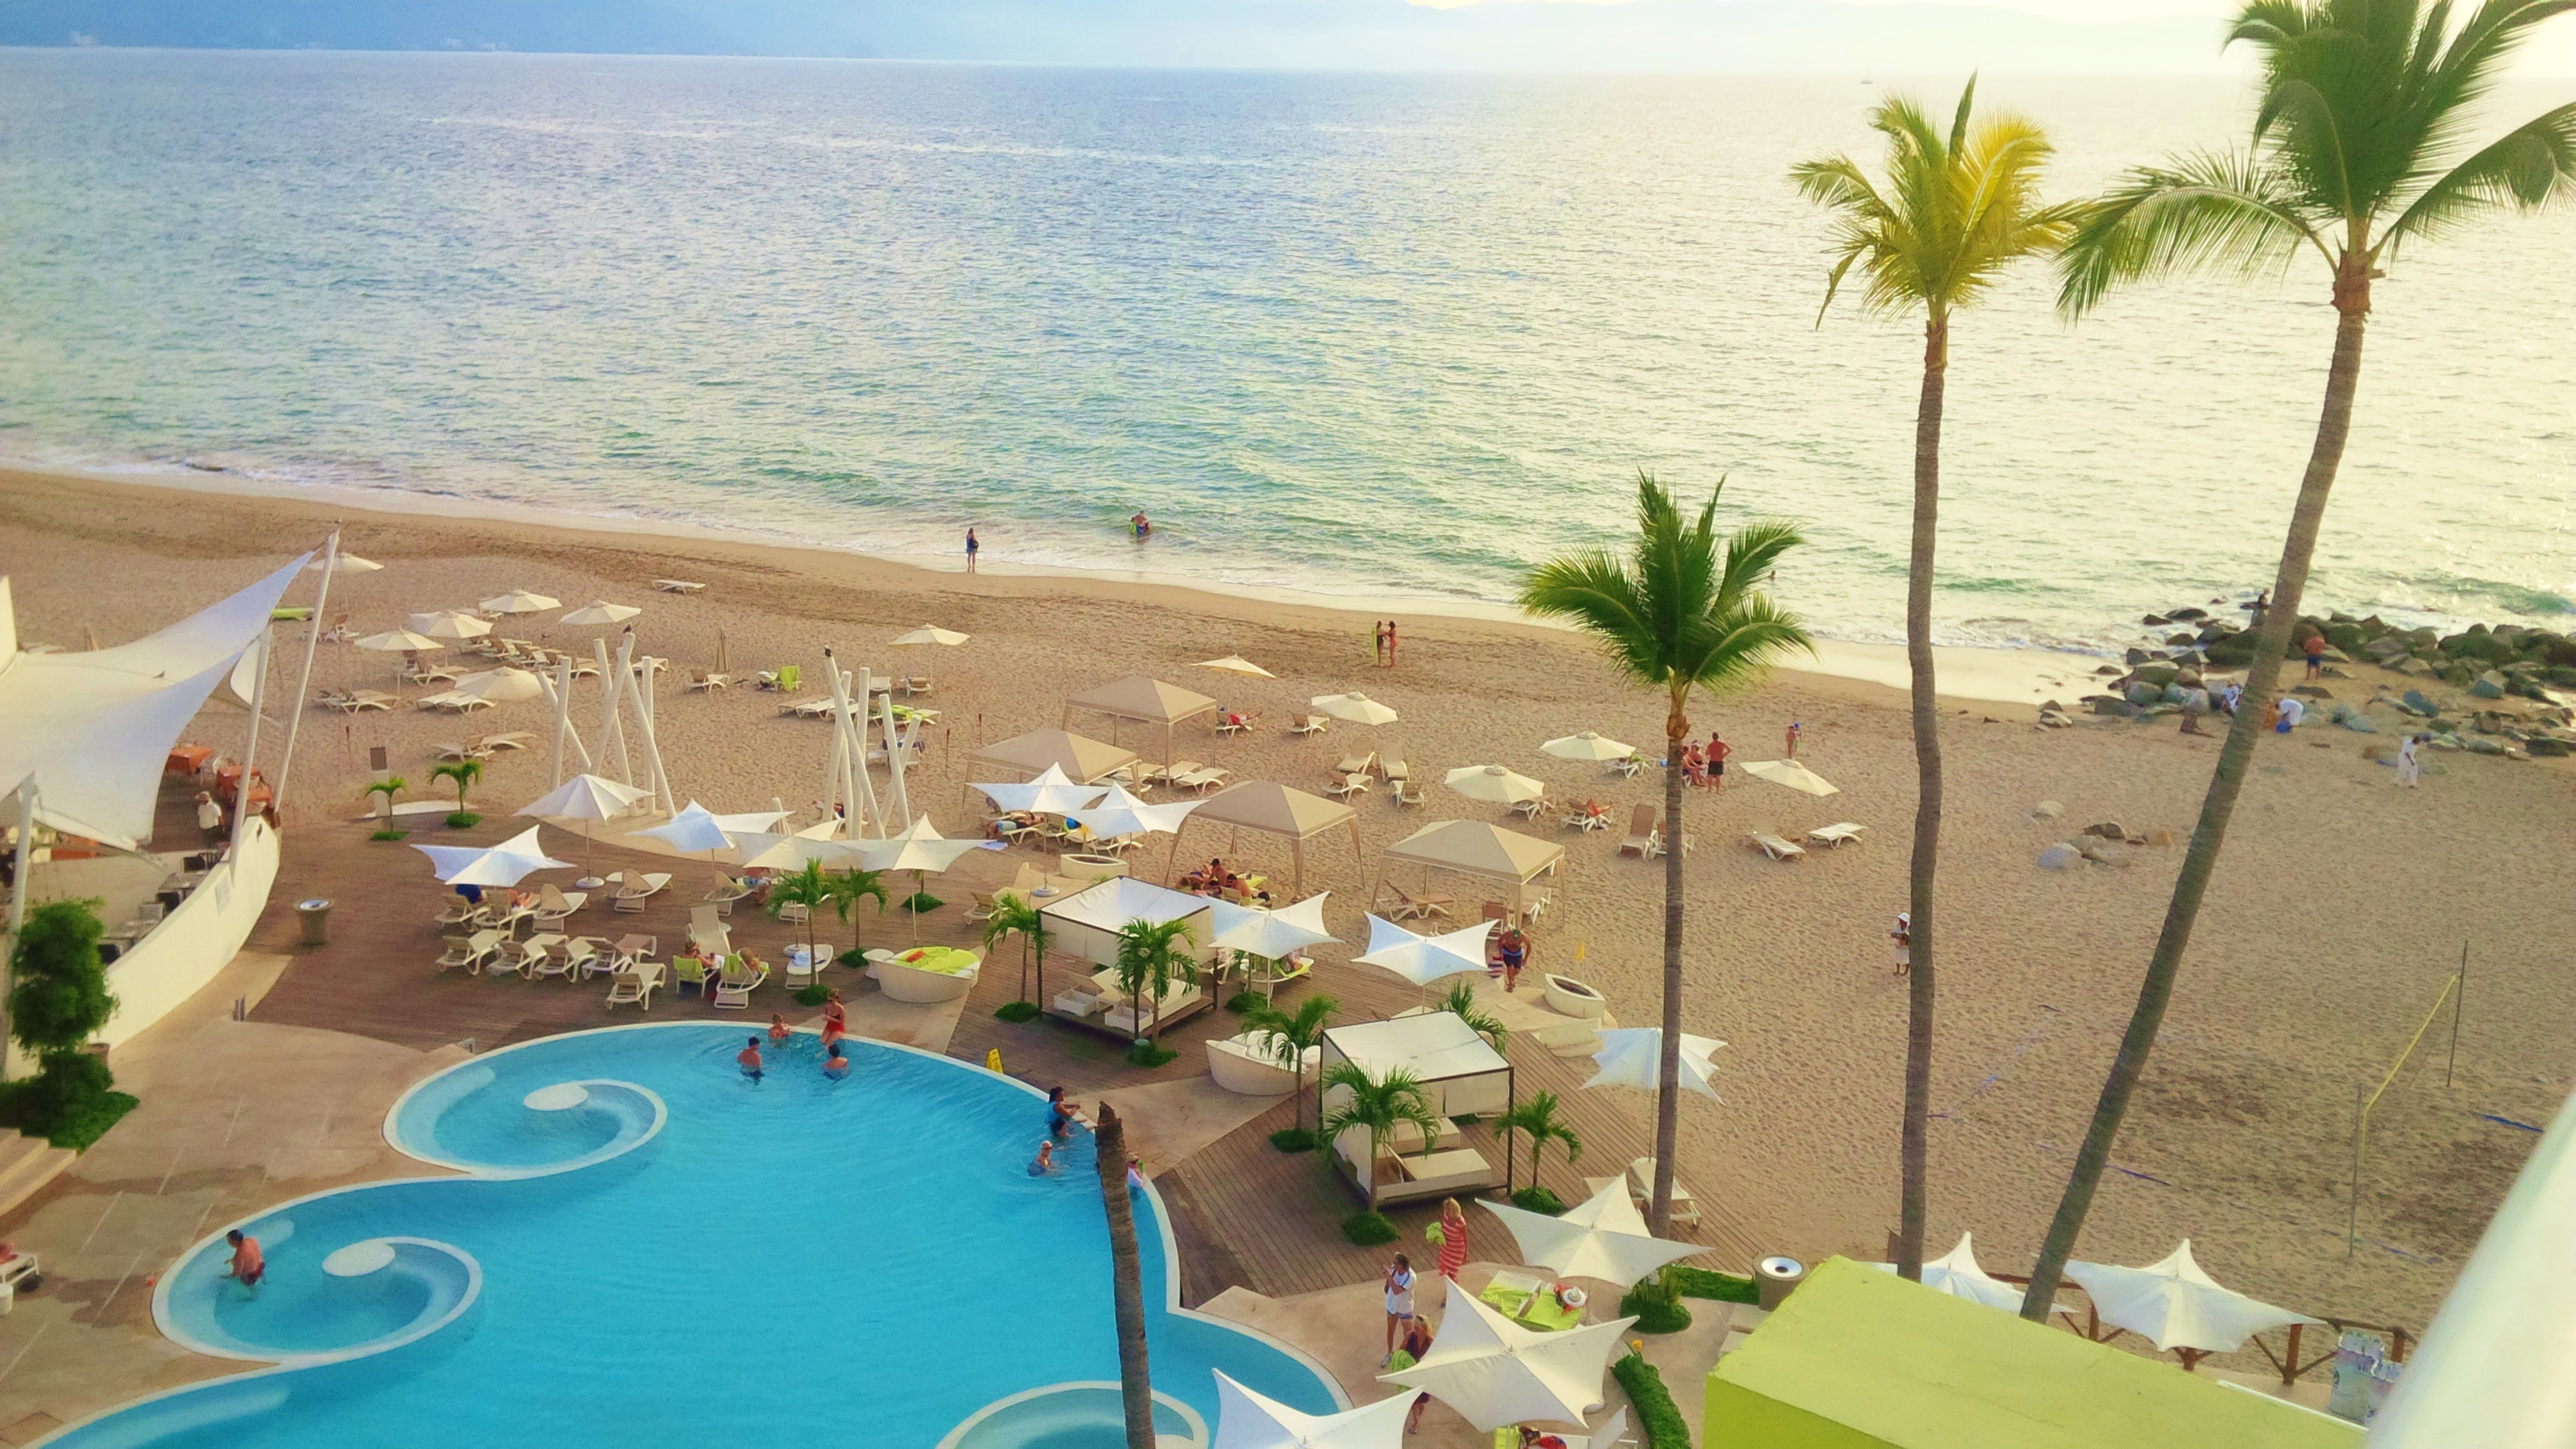 Can I eat gluten free at an All Inclusive Resort